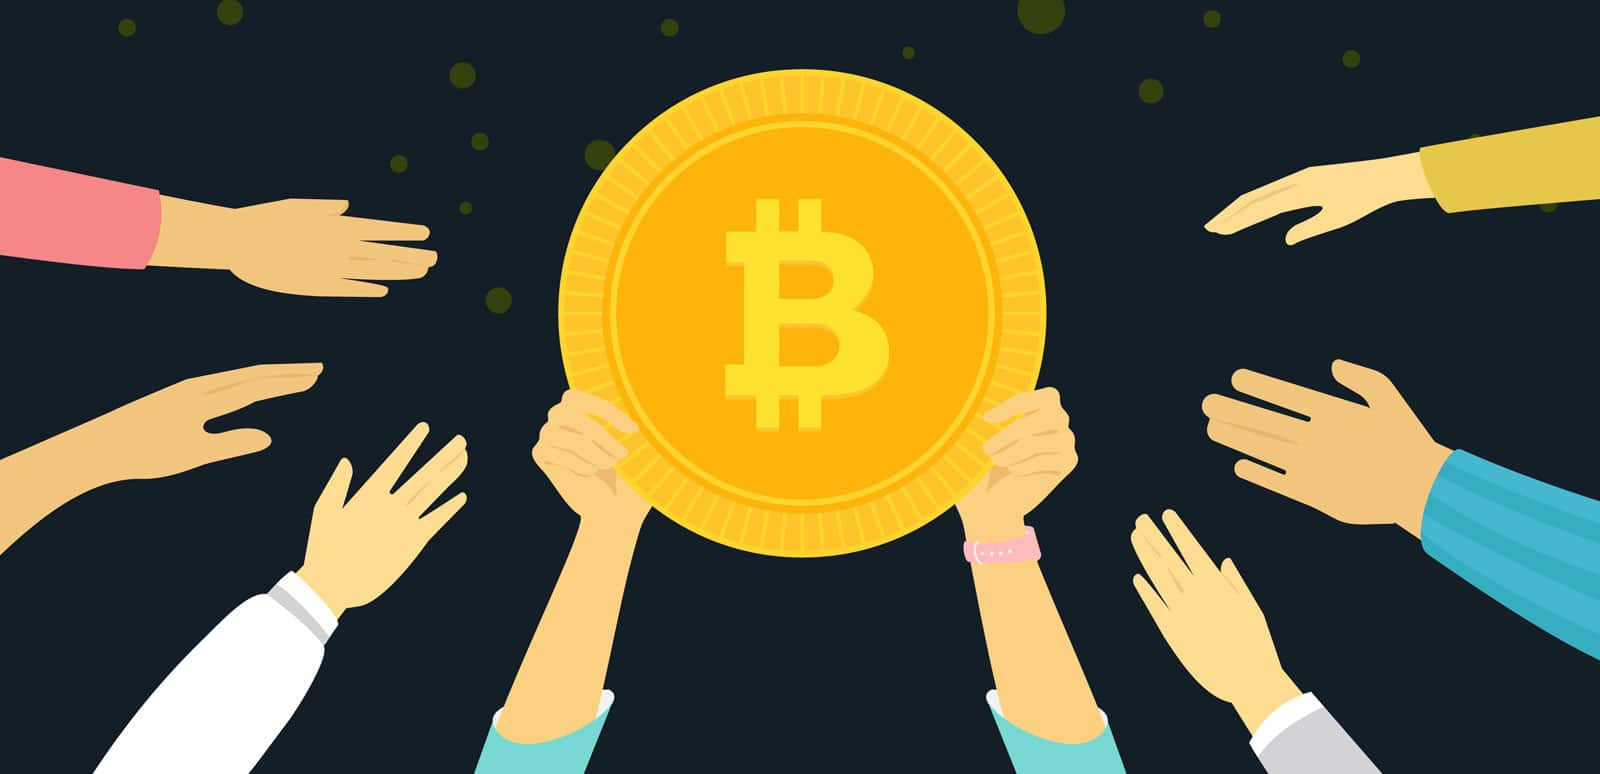 Bitcoin Demographic Trends: Propensity To Buy Bitcoin Increases Despite The Bear Market